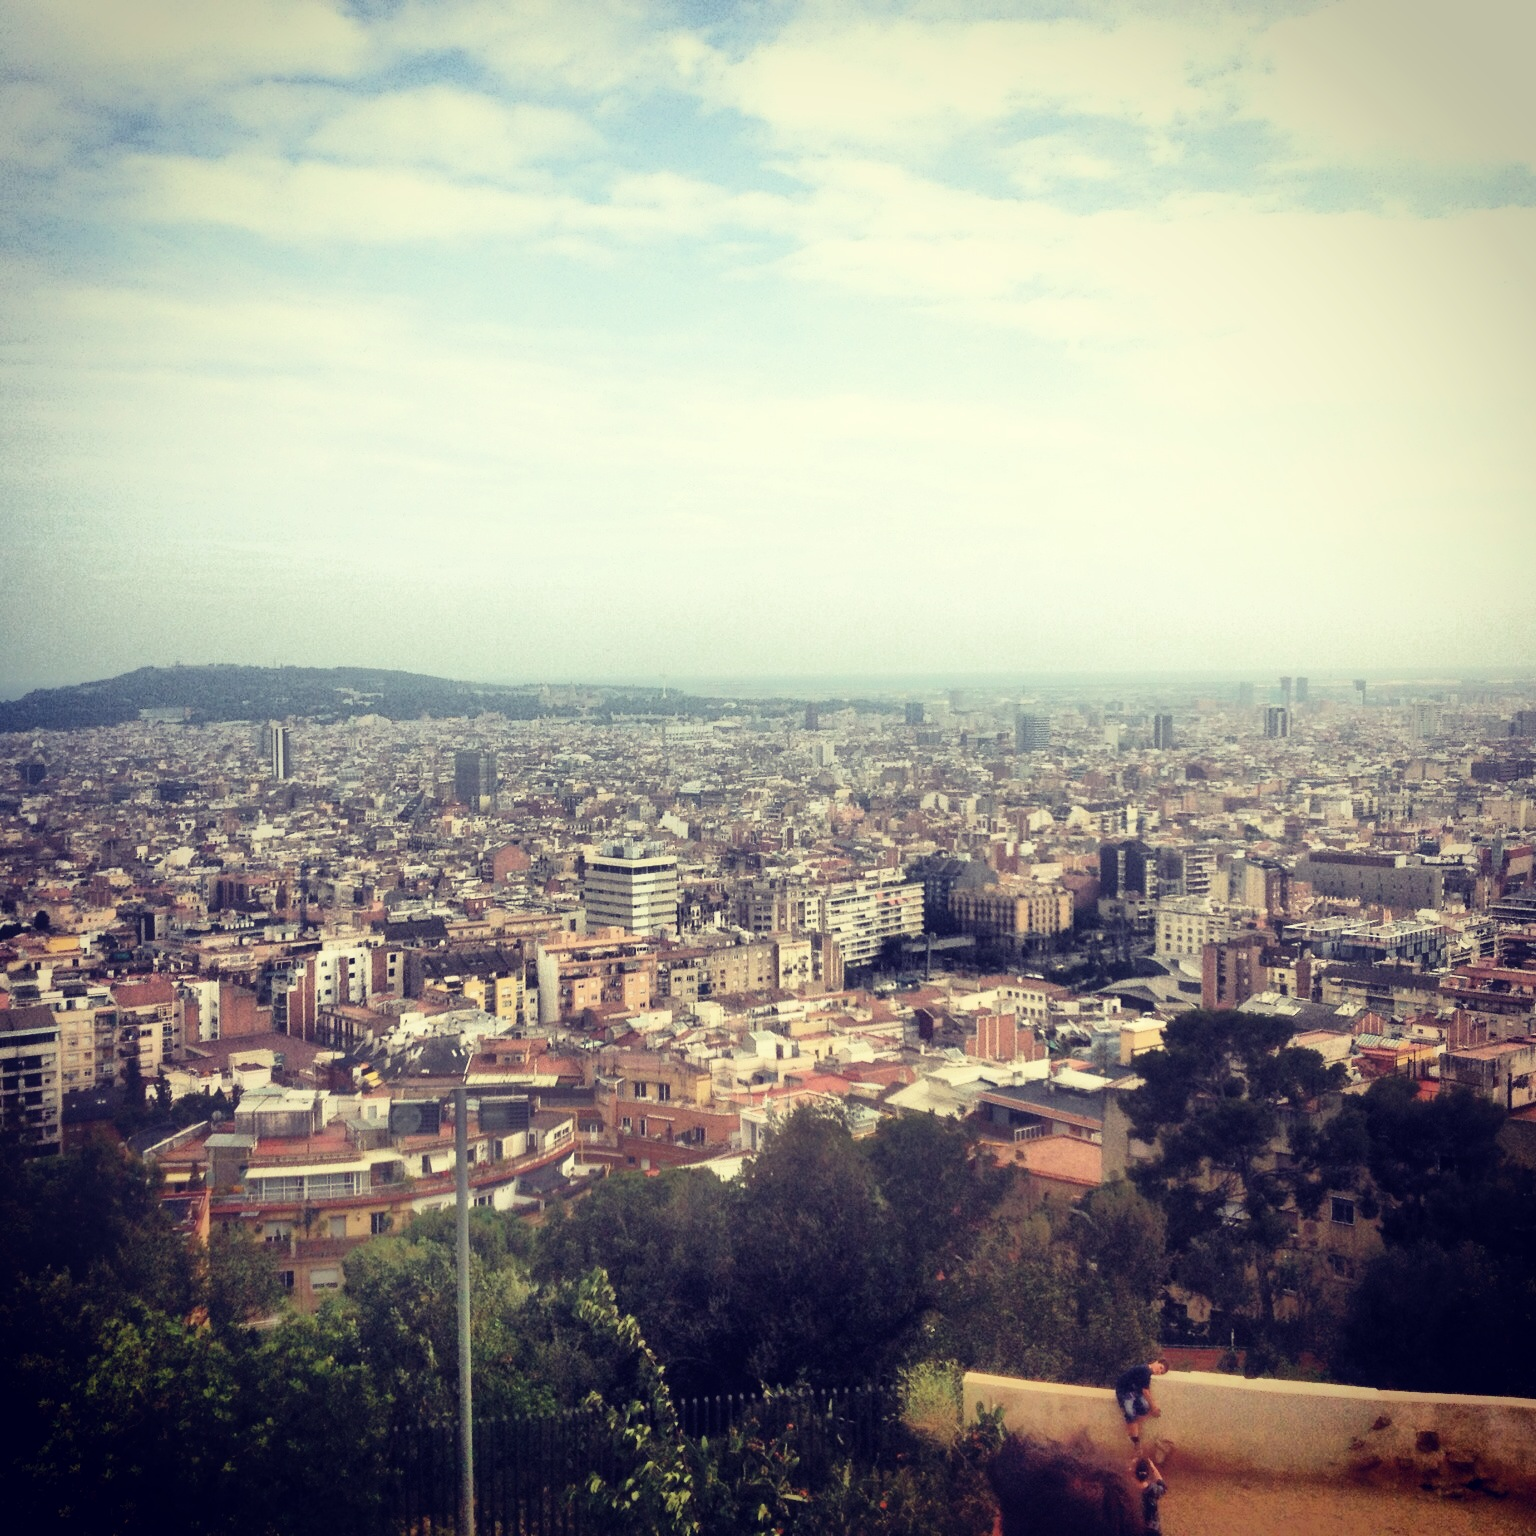 Barcelona, Park Güell: Sprawling City Views - Urban Landscapes Yearning to be Explored